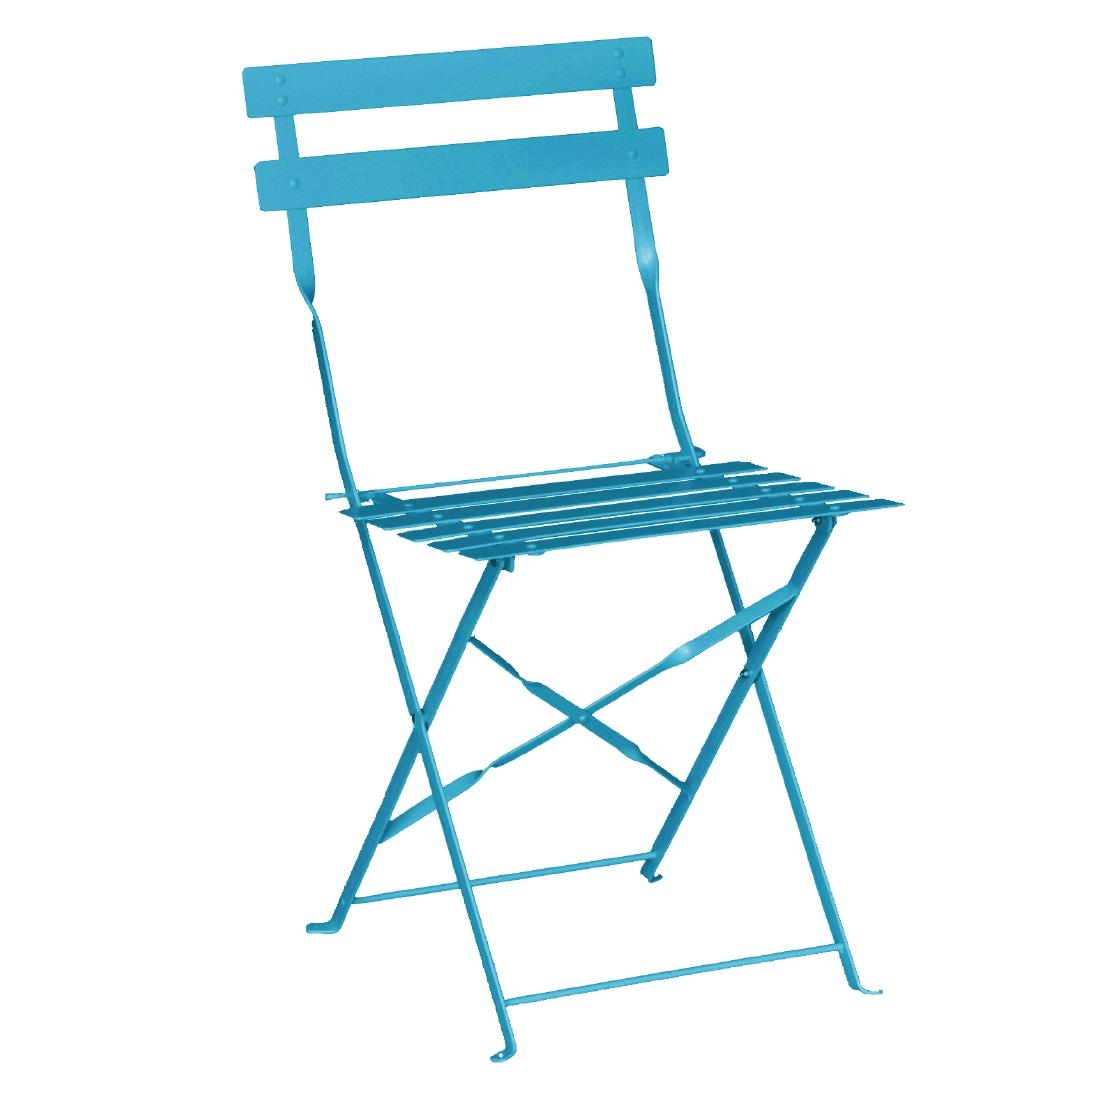 Parisian folding pavement chair – Blue